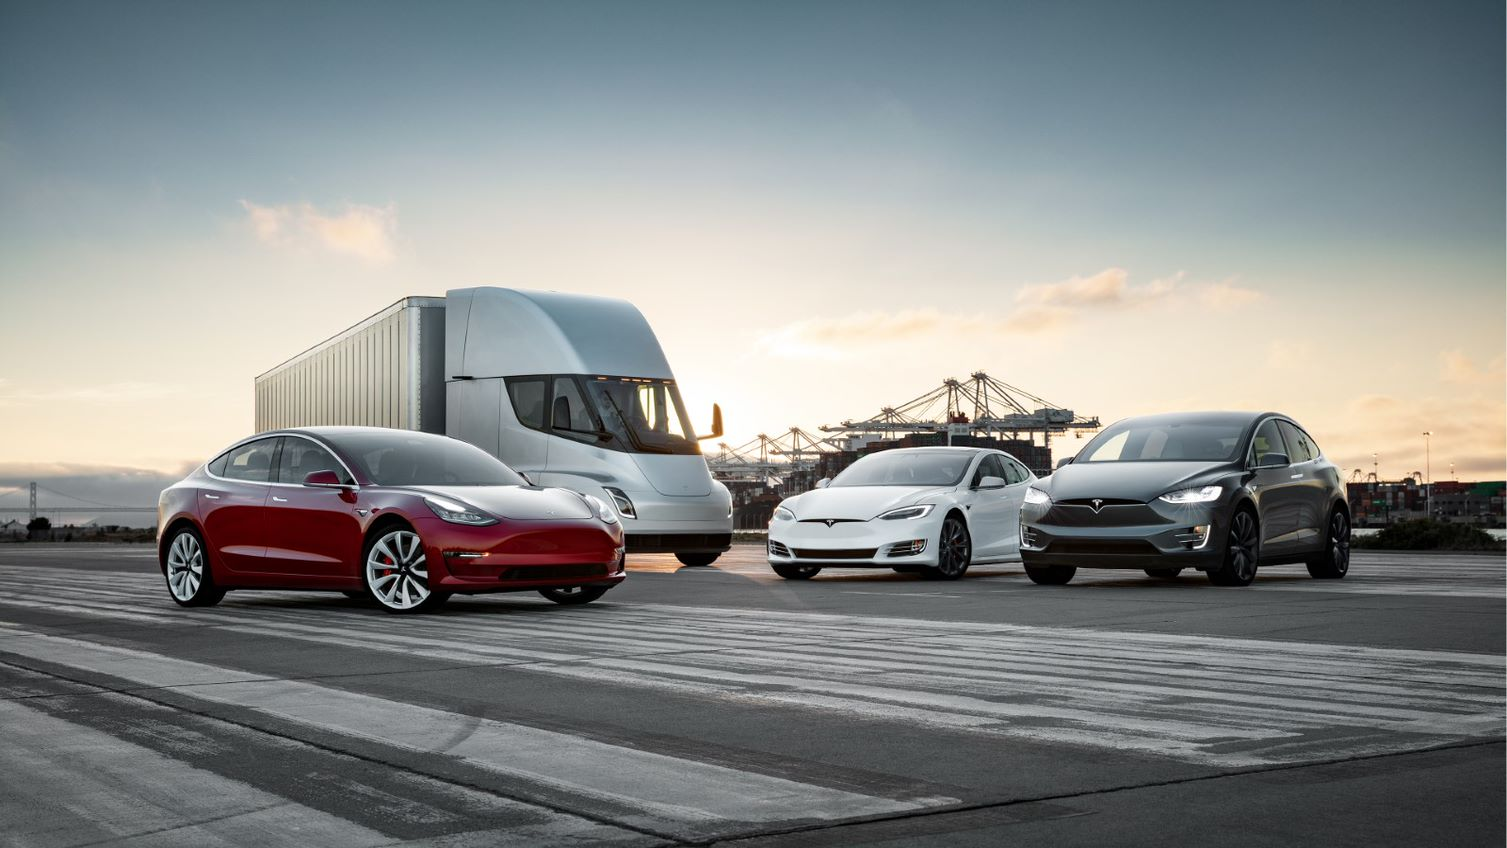 Tesla Impact Report 2019: Sustainability and Safety is what Drives Tesla